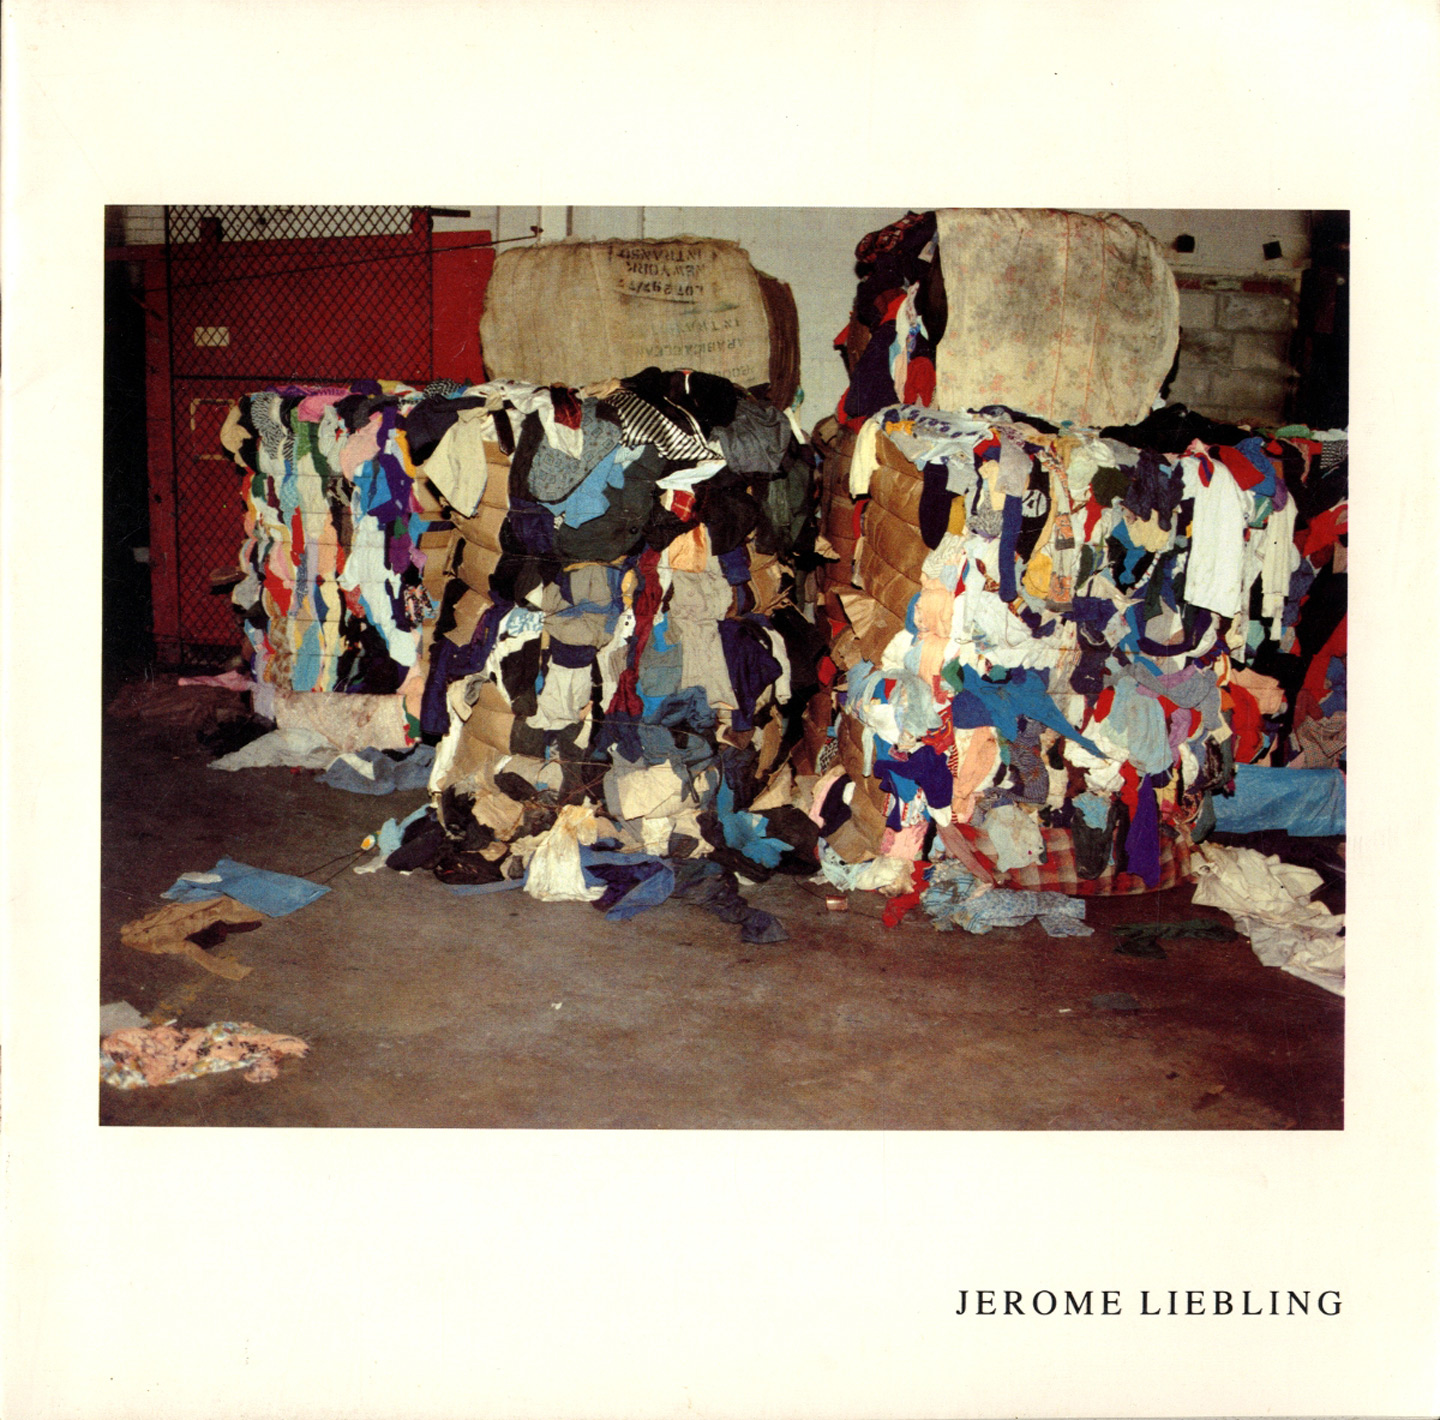 Photography at the Corcoran Series: Jerome Liebling